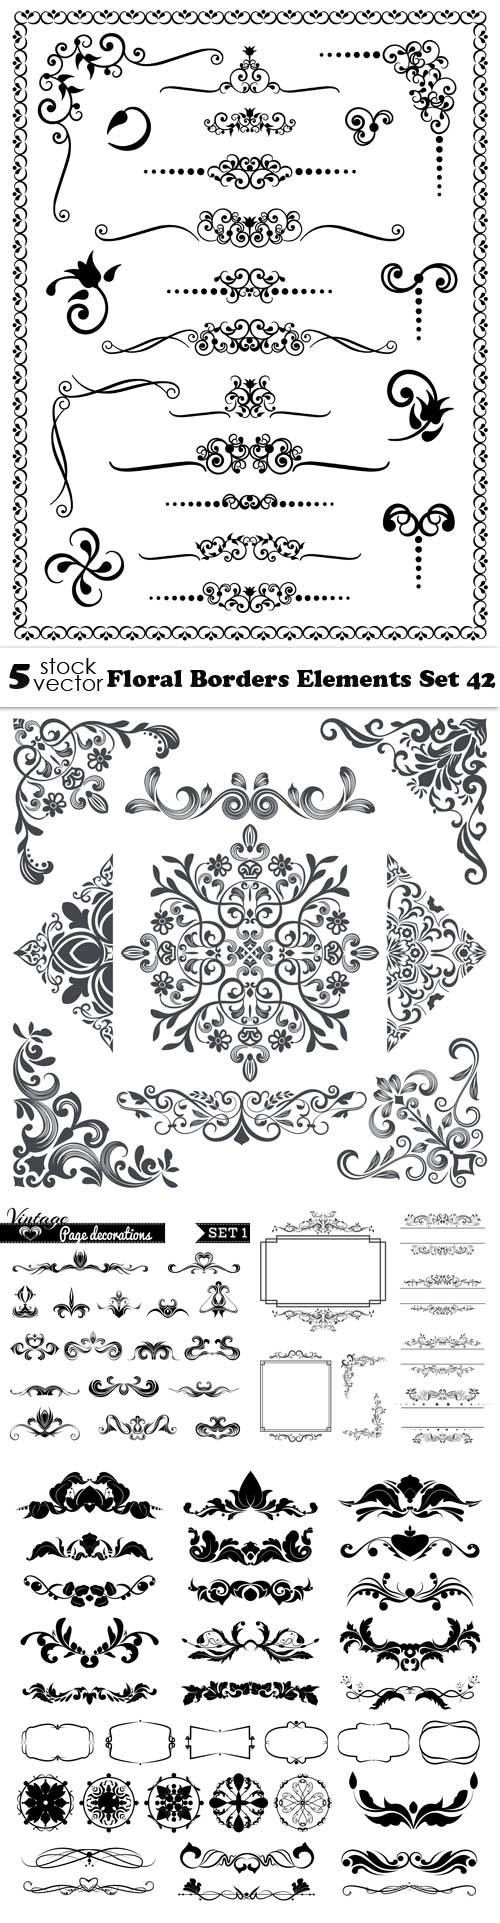 Vectors - Floral Borders Elements Set 42